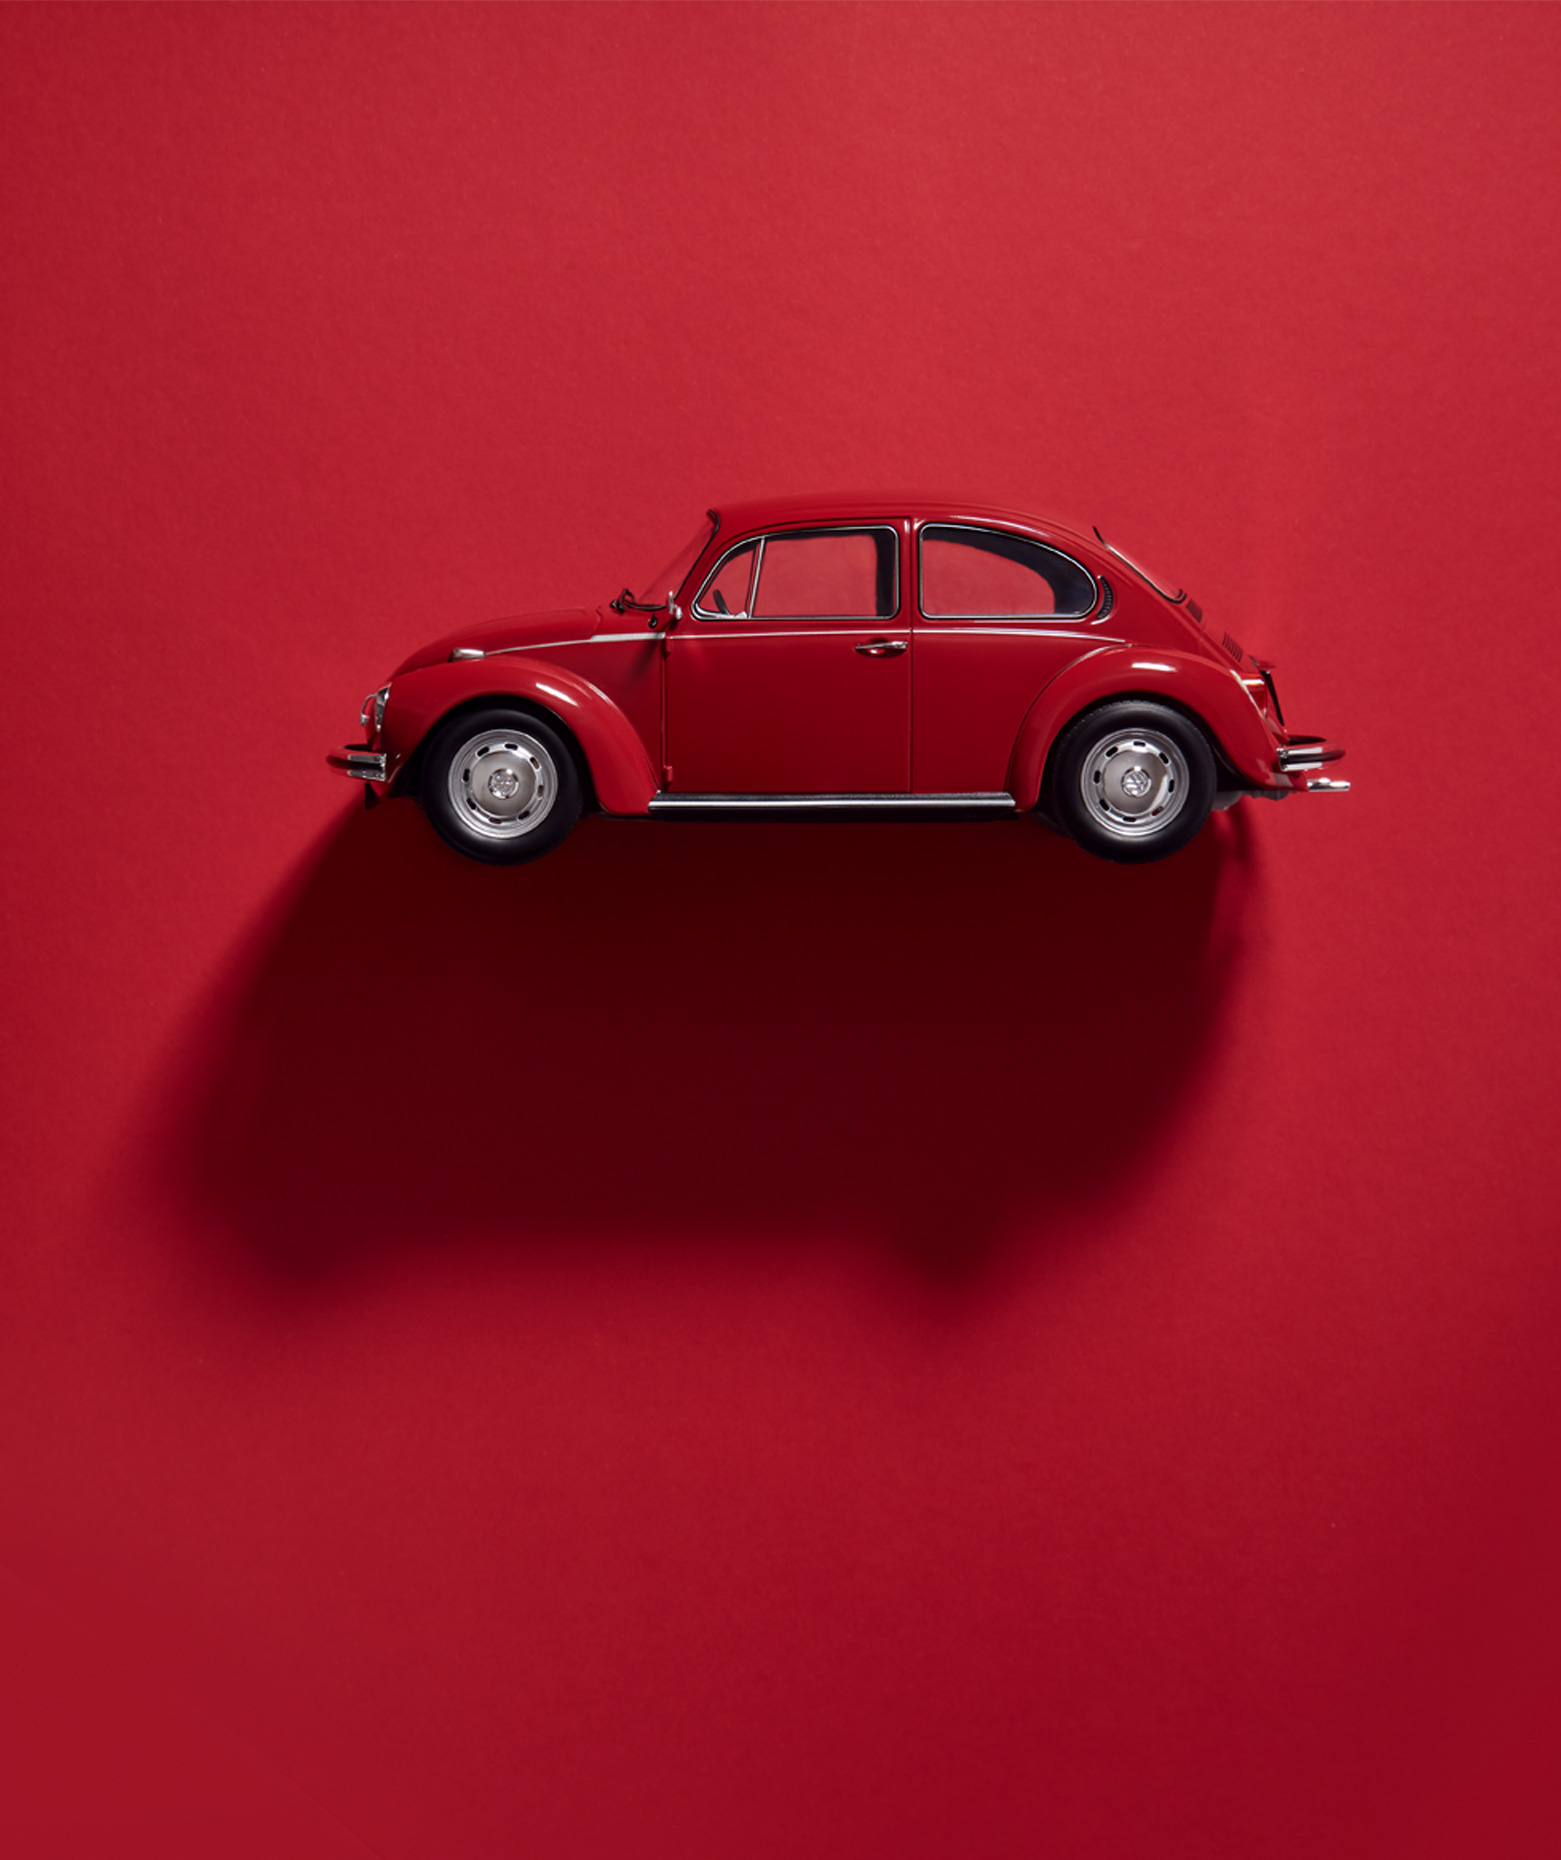 Still Life Photography: vw beetle red